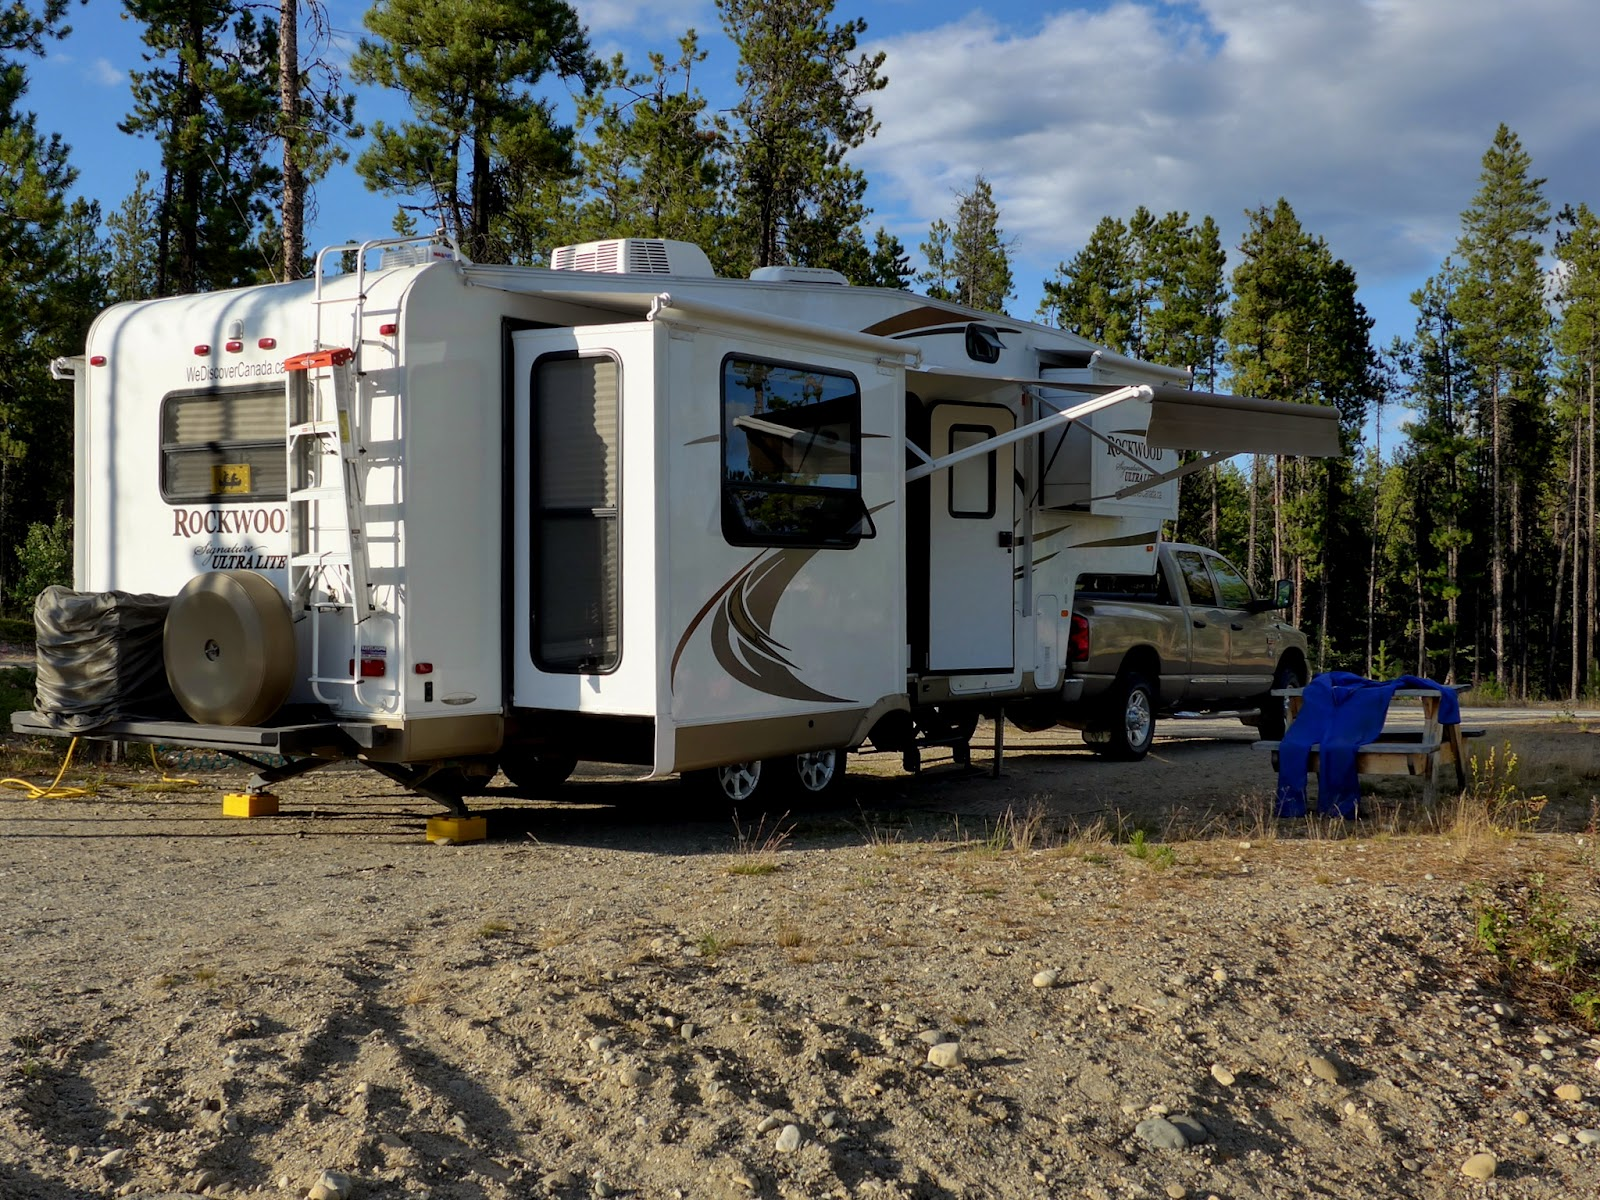 Camped at Baby Nugget City RV Park.